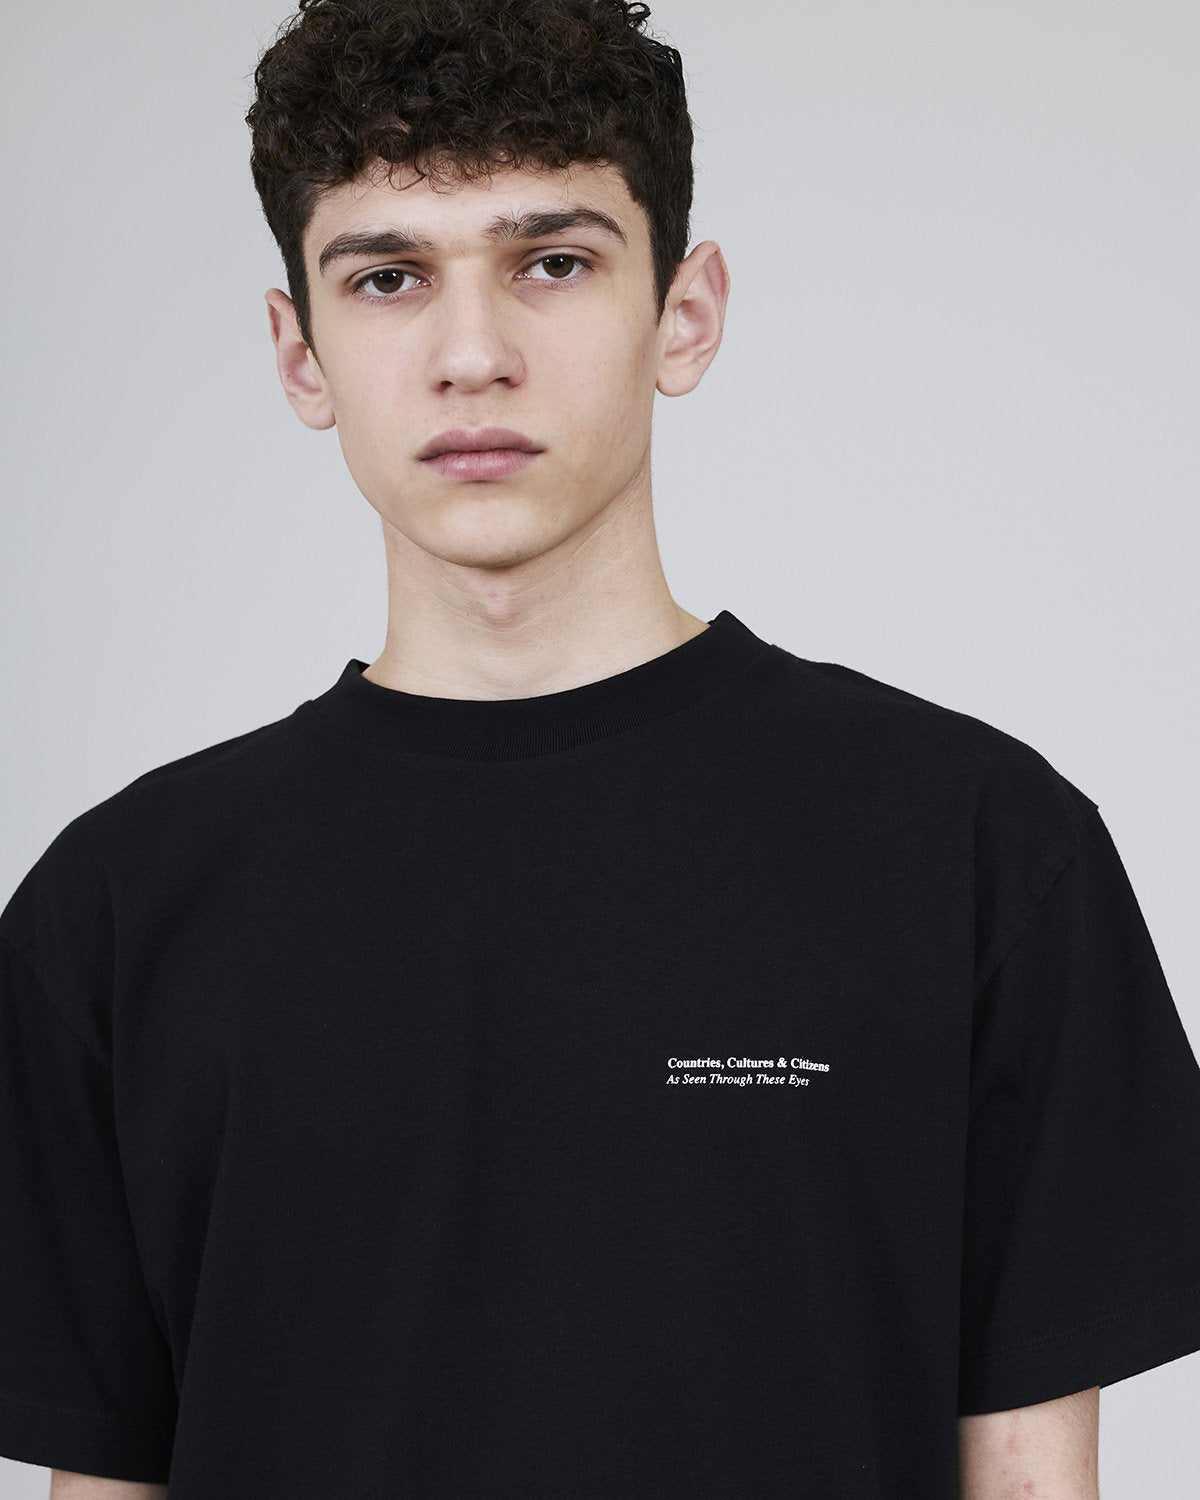 ØLÅF x Halal T - Edition 2 Black, Portuguese fabric, 100% cotton (220 grams/sqm), Post wash, Fine ribbed collar, Made in Portugal